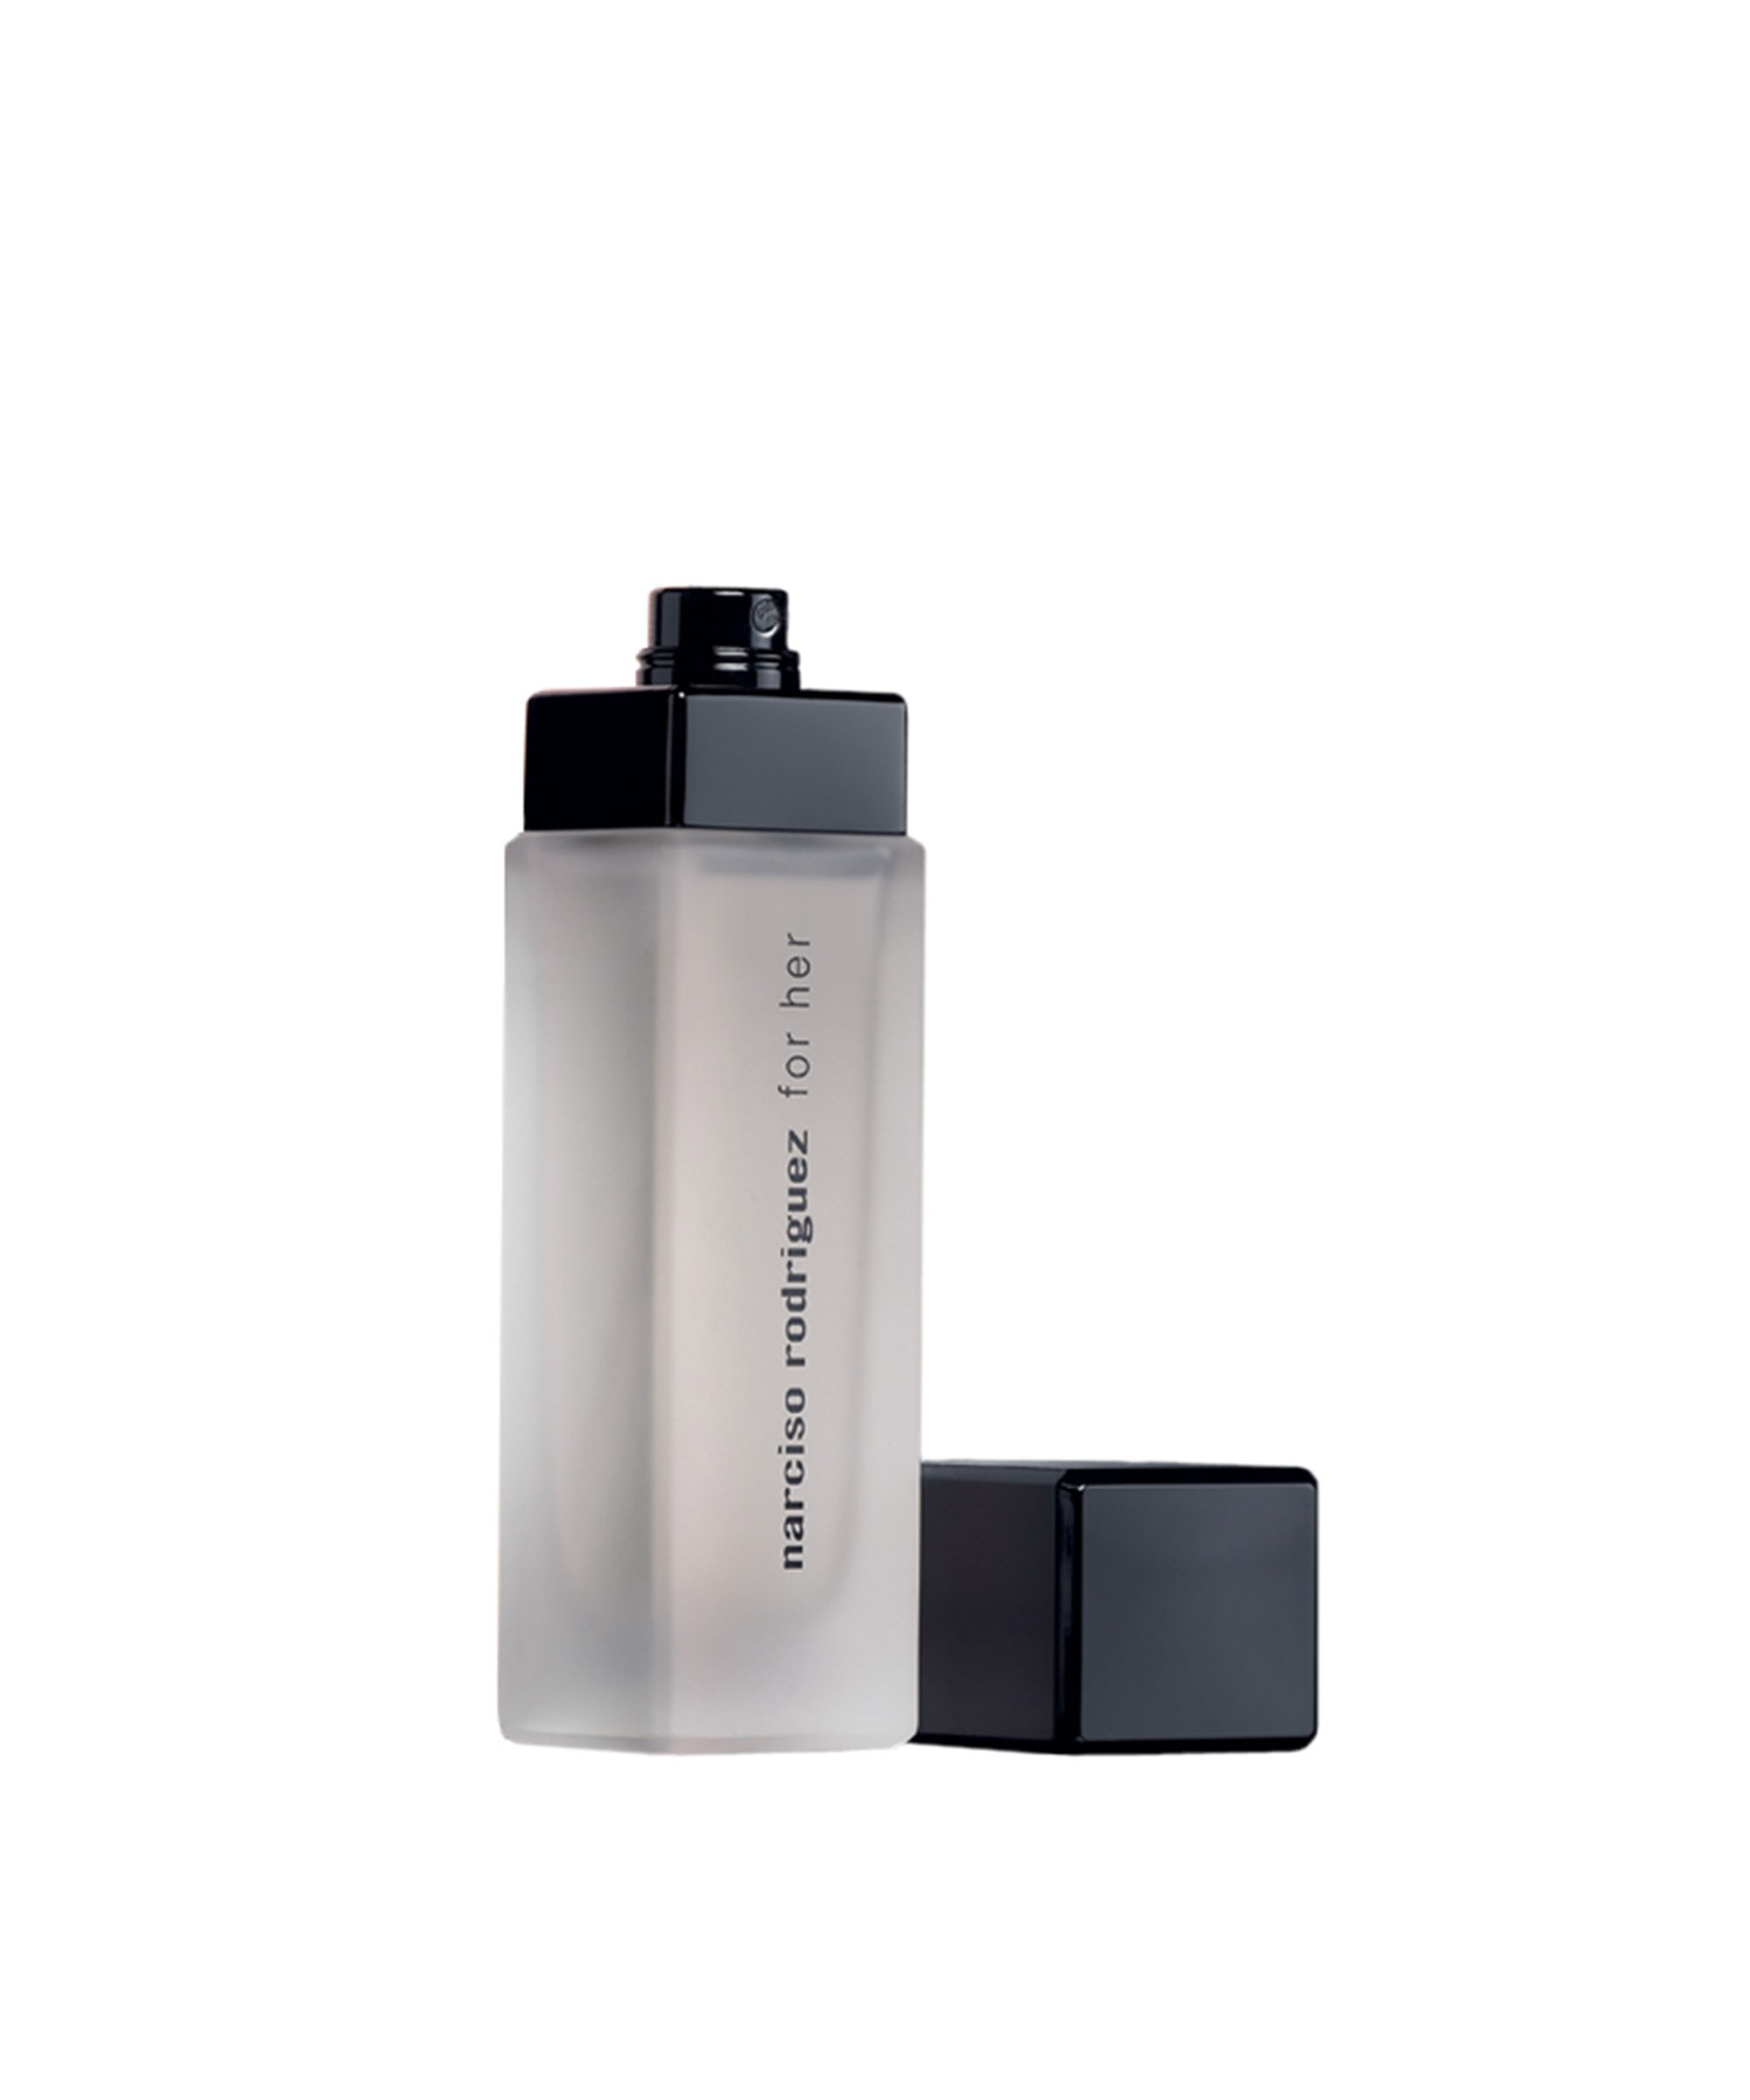 Narciso Rodriguez For Her Hair Mist, 30ml